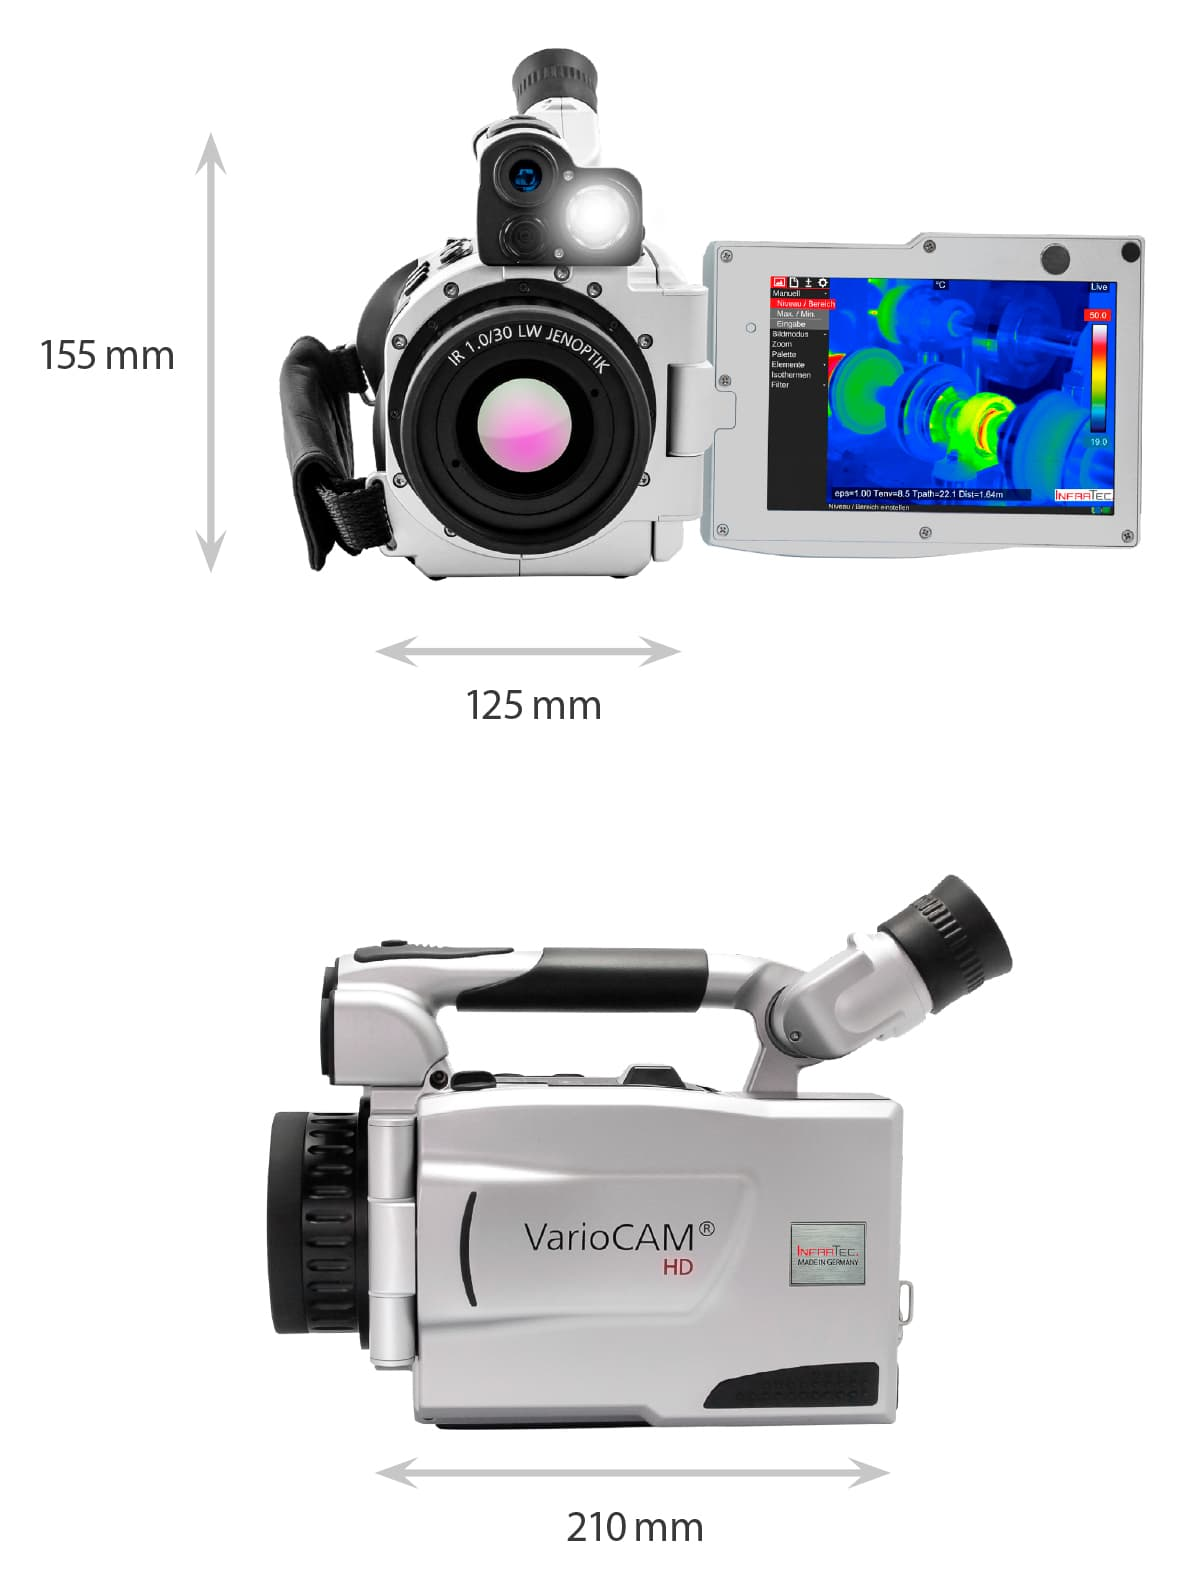 Dimensions of the VarioCAM HD